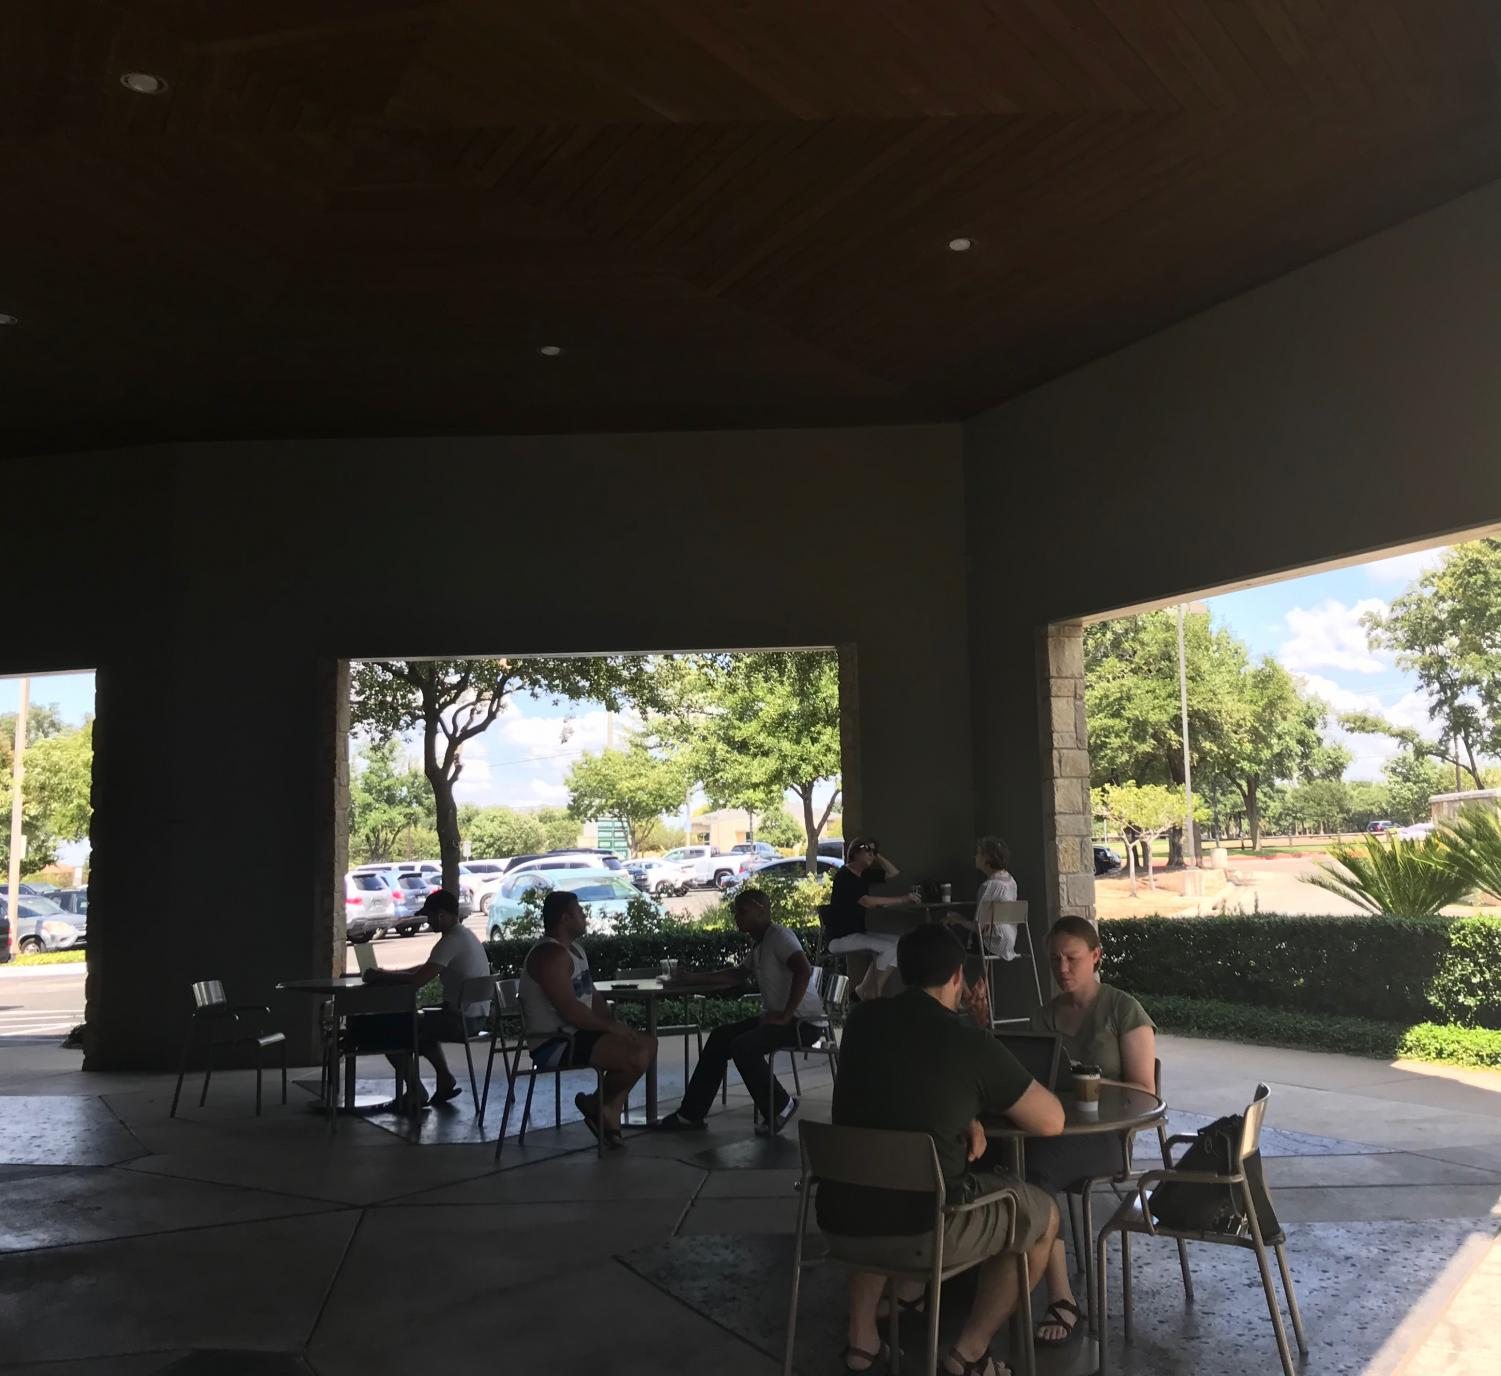 Immediately+outside+the+entrance%2C+there+is+a+small+seating+area+where+customers+can+enjoy+their+drinks+in+an+outdoor+environment.